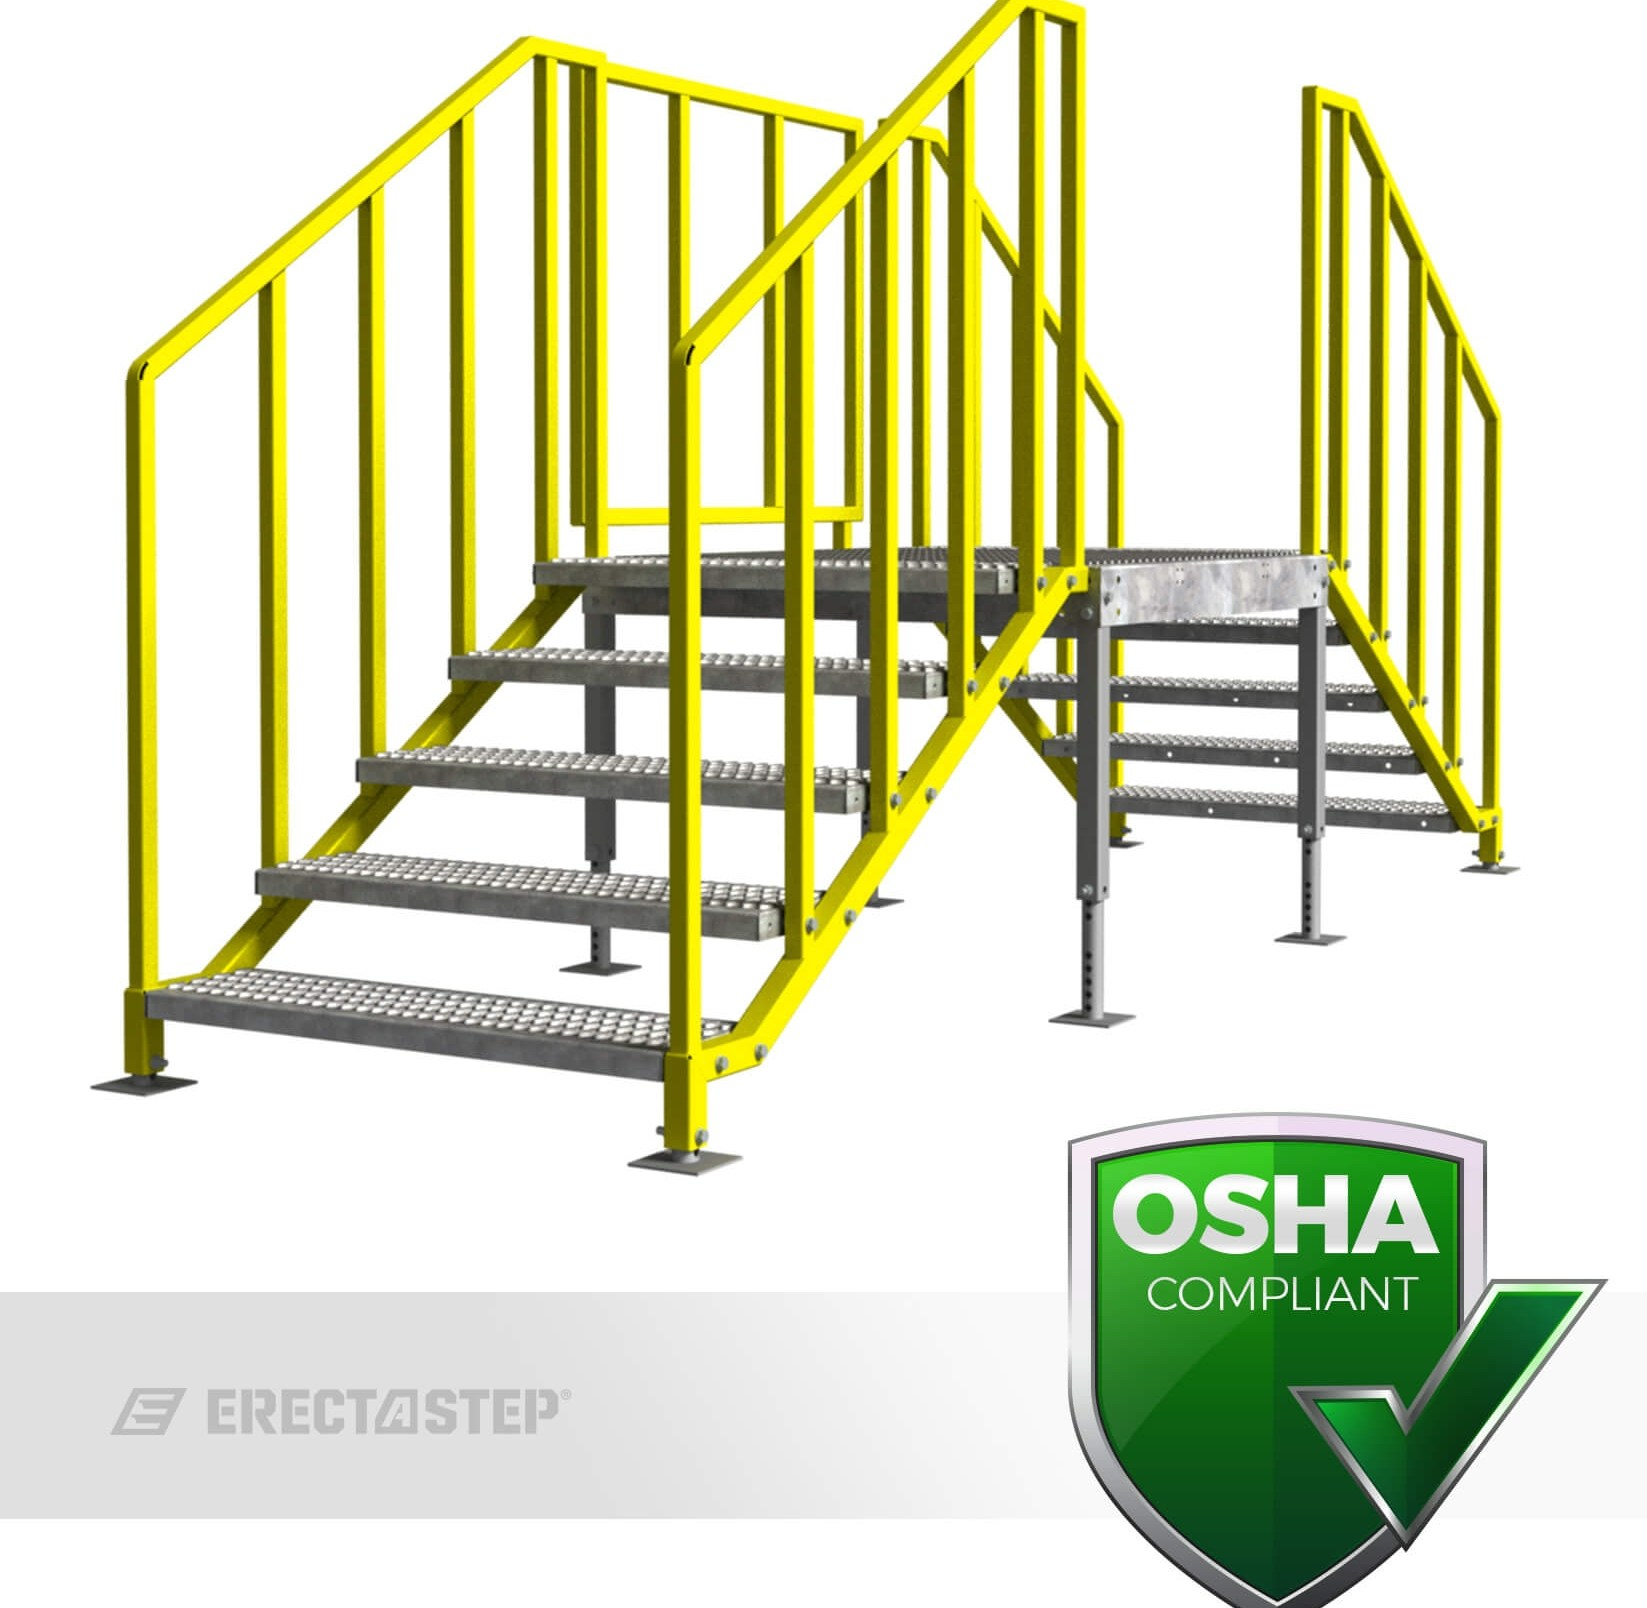 Portable Stairs Multiple Entries Yellowgate | Portable Stairs With Handrail | Chair | Plastic Portable | Camper | Wall Mounted | Ladder